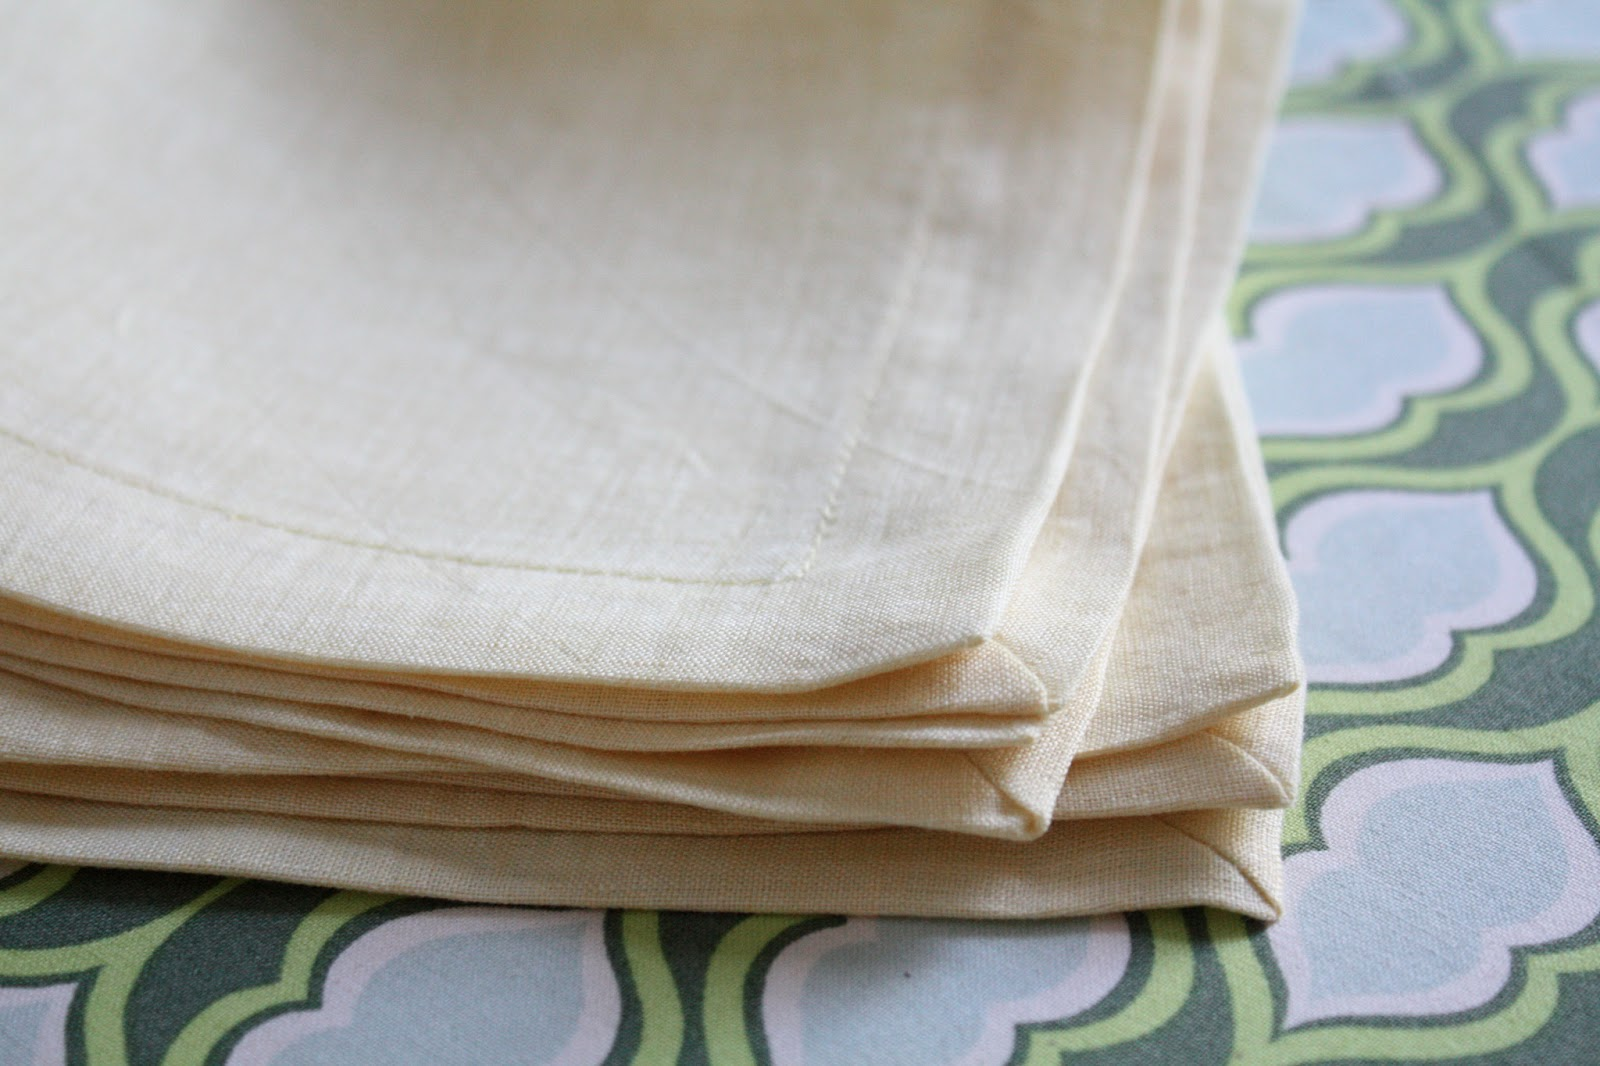 Nicole at Home: Miter-cornered napkins, two ways